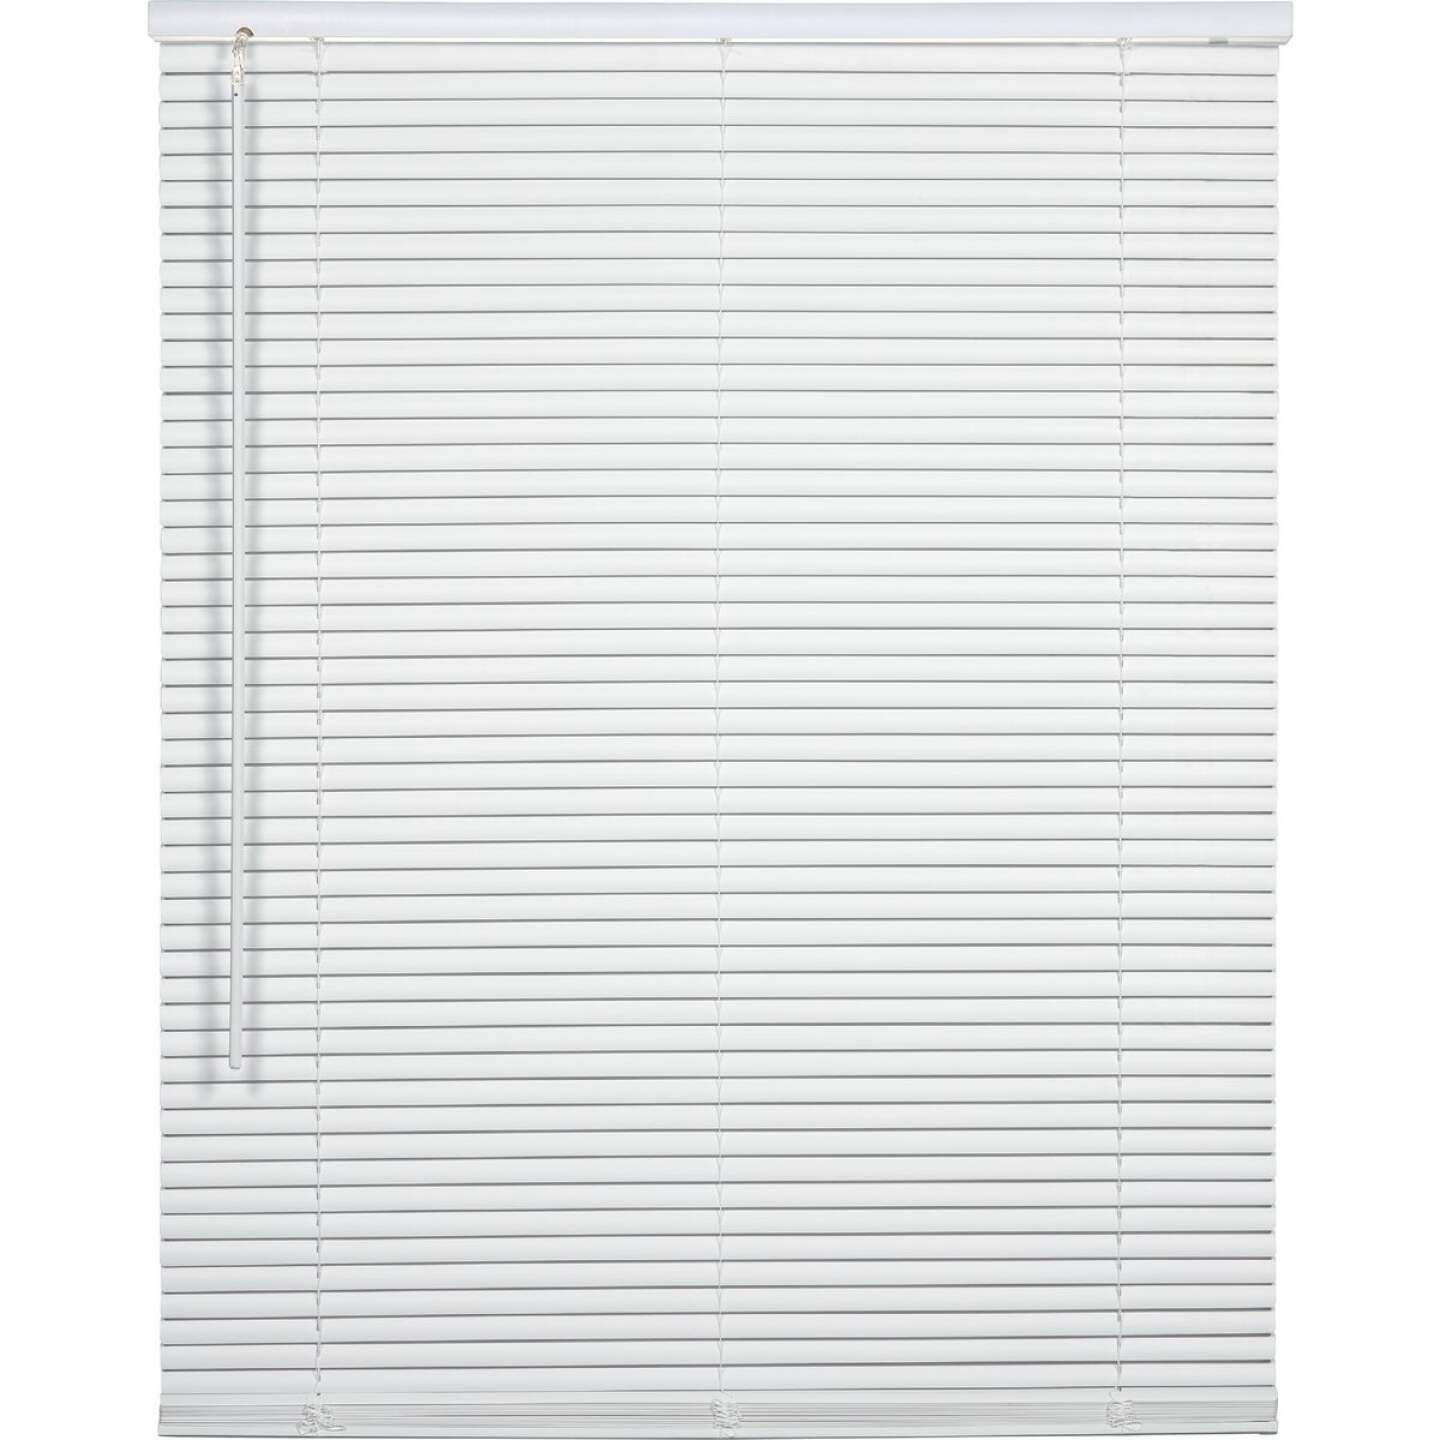 Home Impressions 41 In. x 64 In. x 1 In. White Vinyl Light Filtering Cordless Mini Blind Image 1